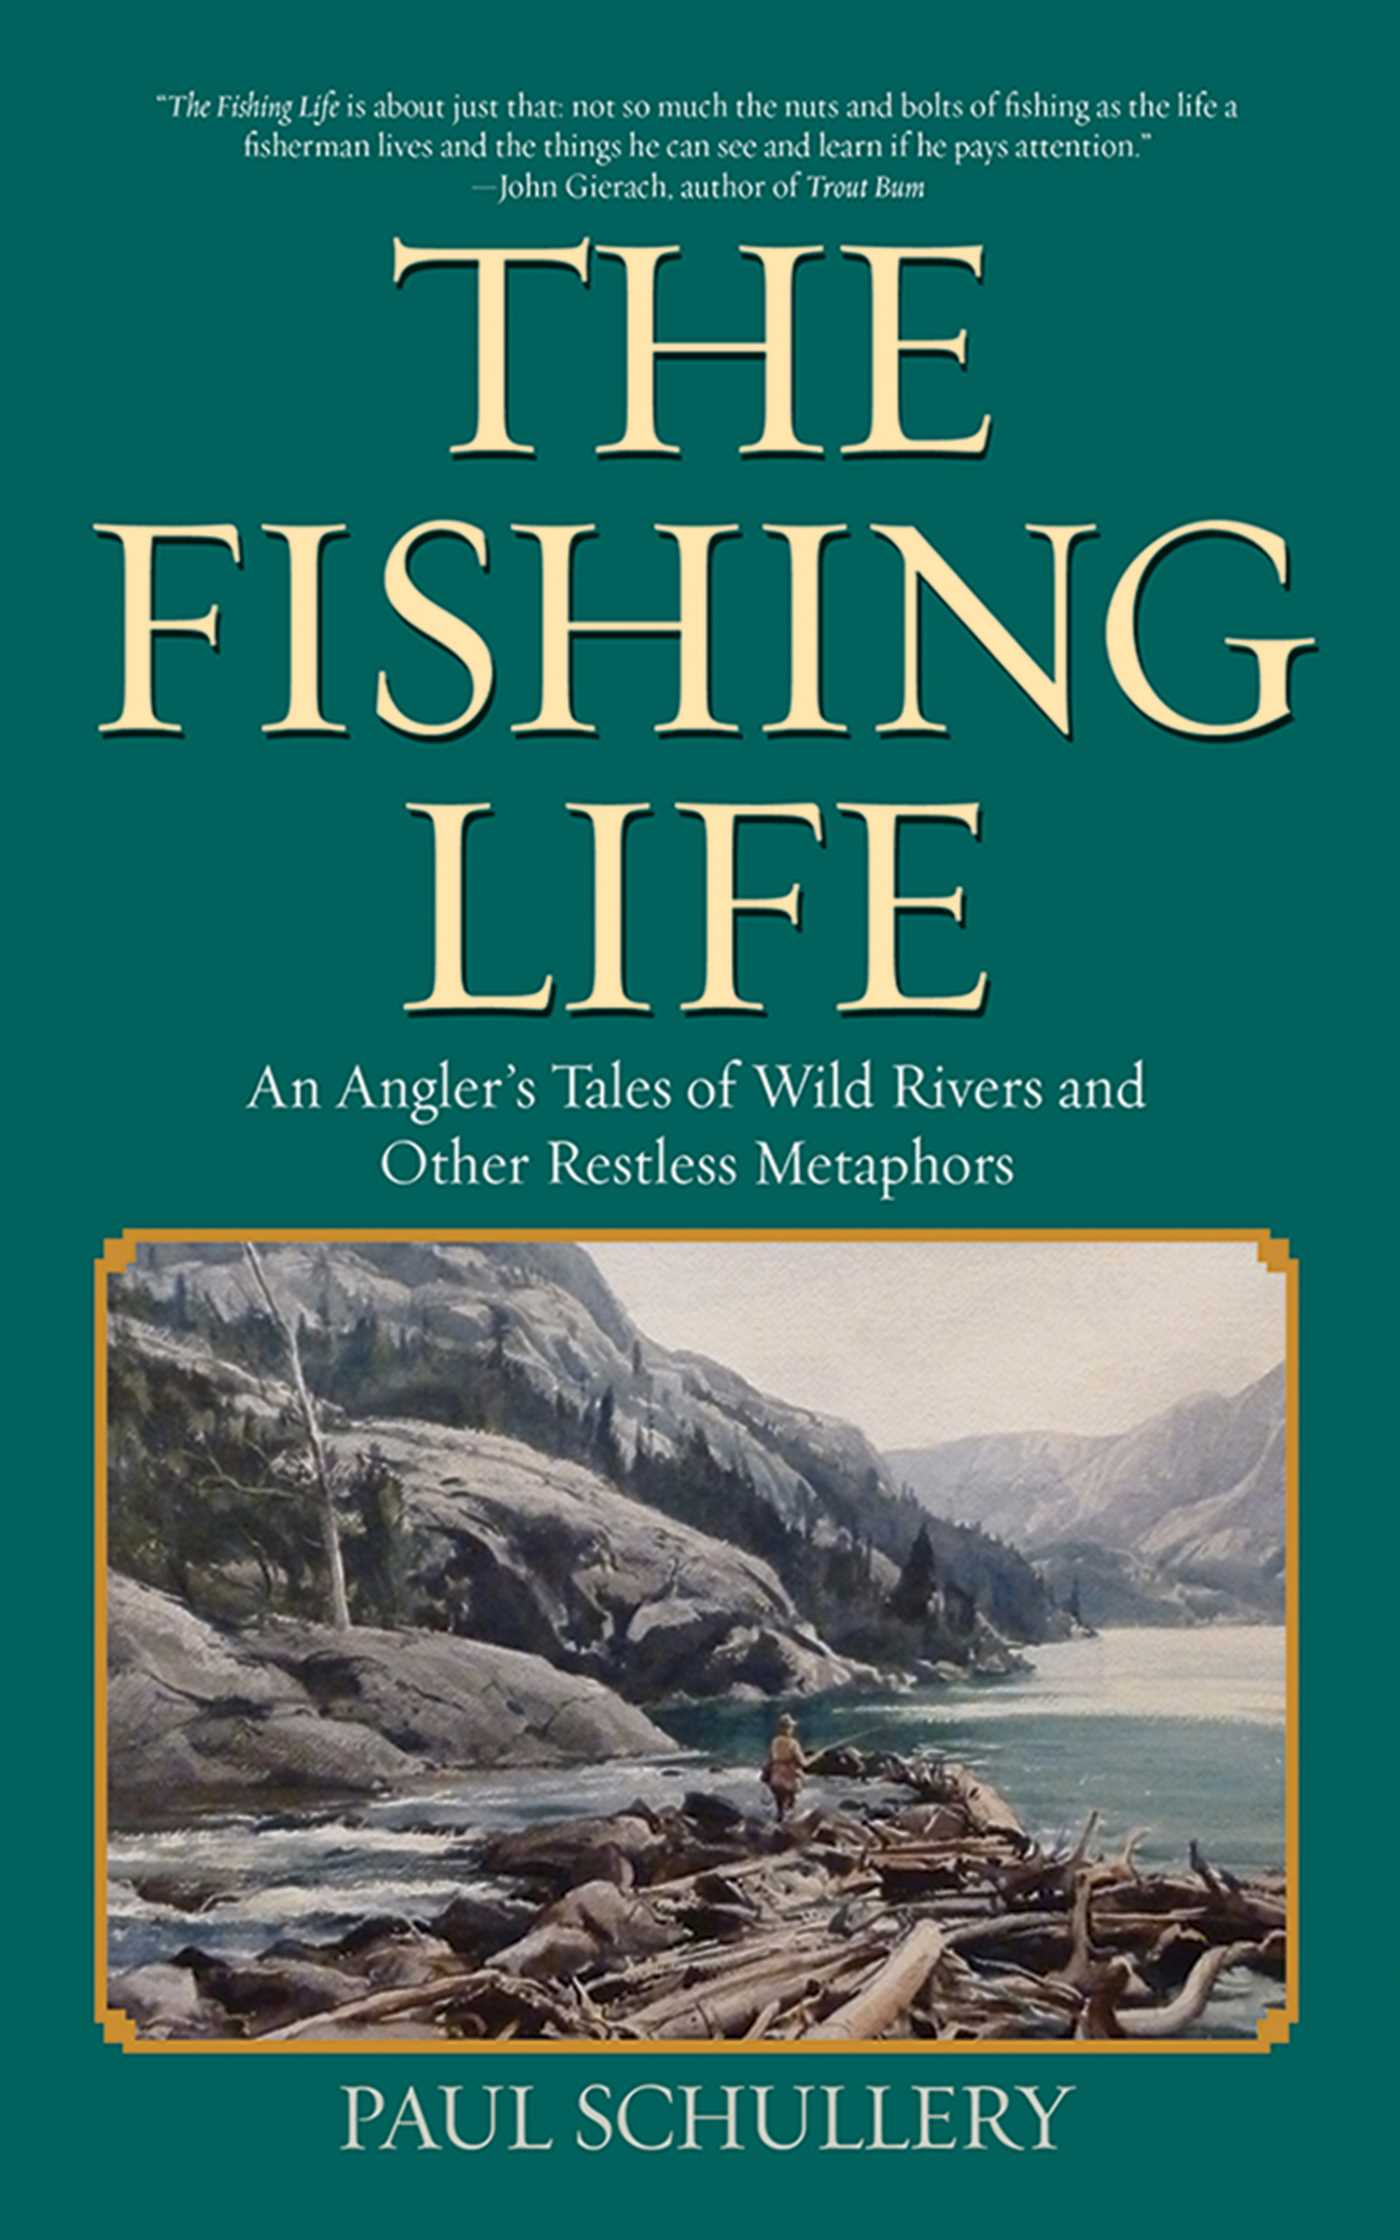 The Fishing Life | Book by Paul Schullery, Marsha Karle | Official